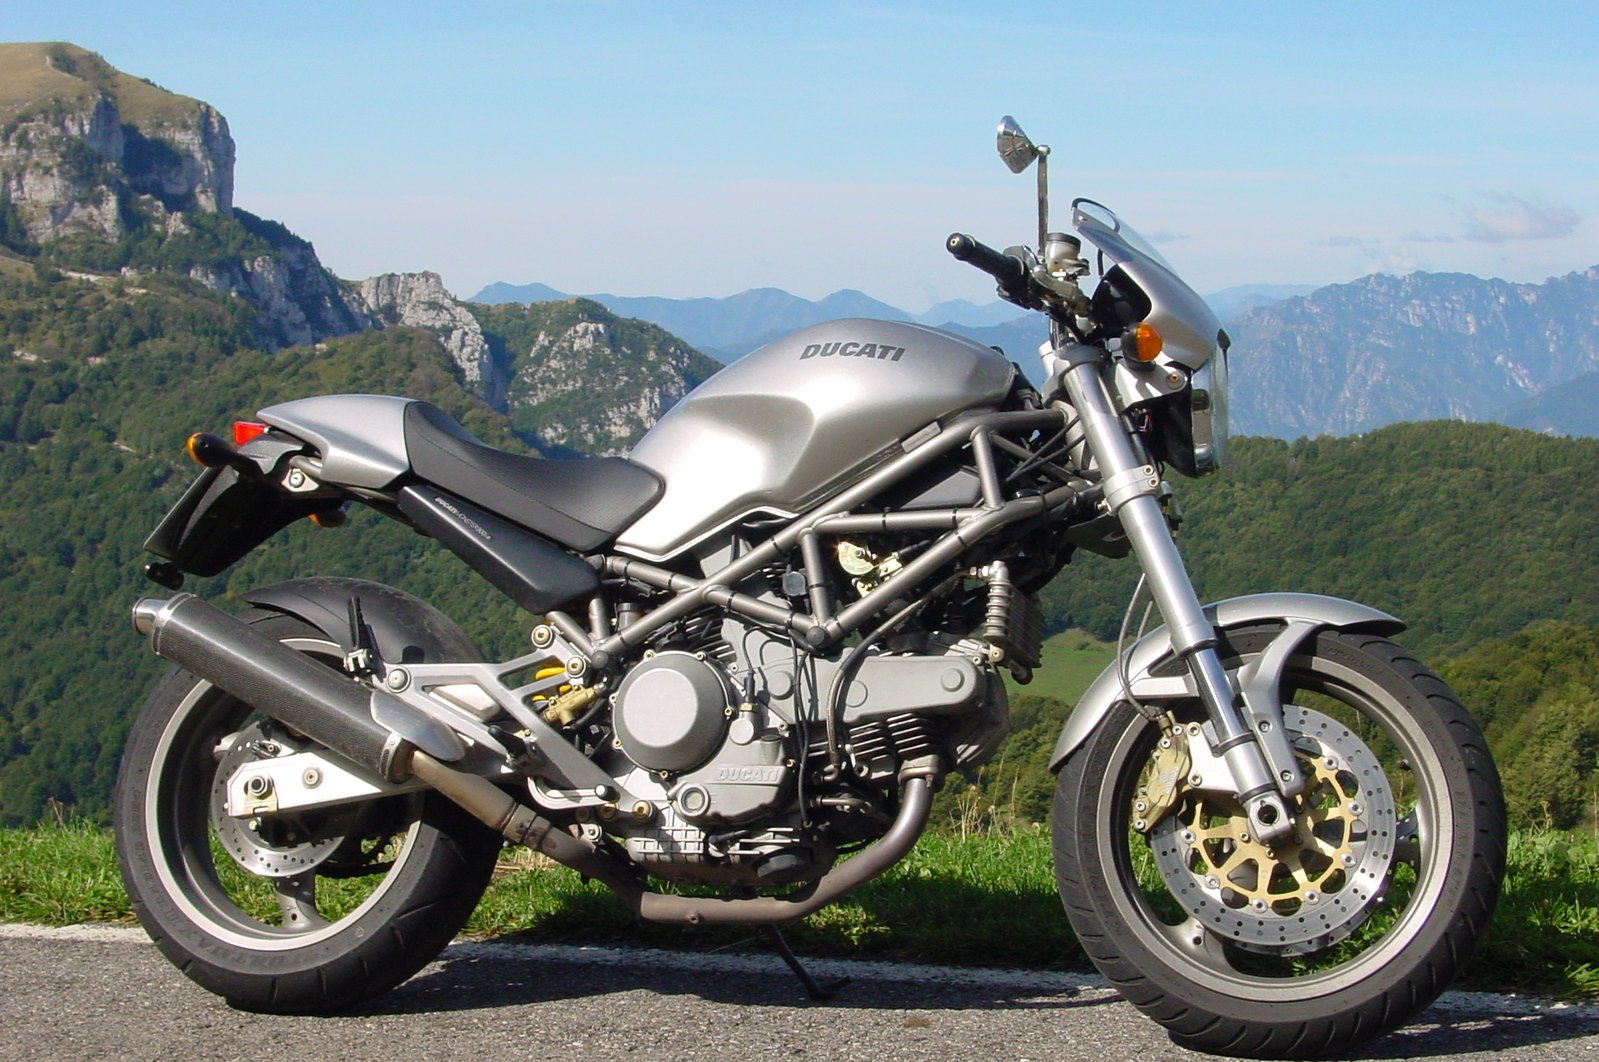 Are You Selling A Used Motorcycle In Massachusetts?